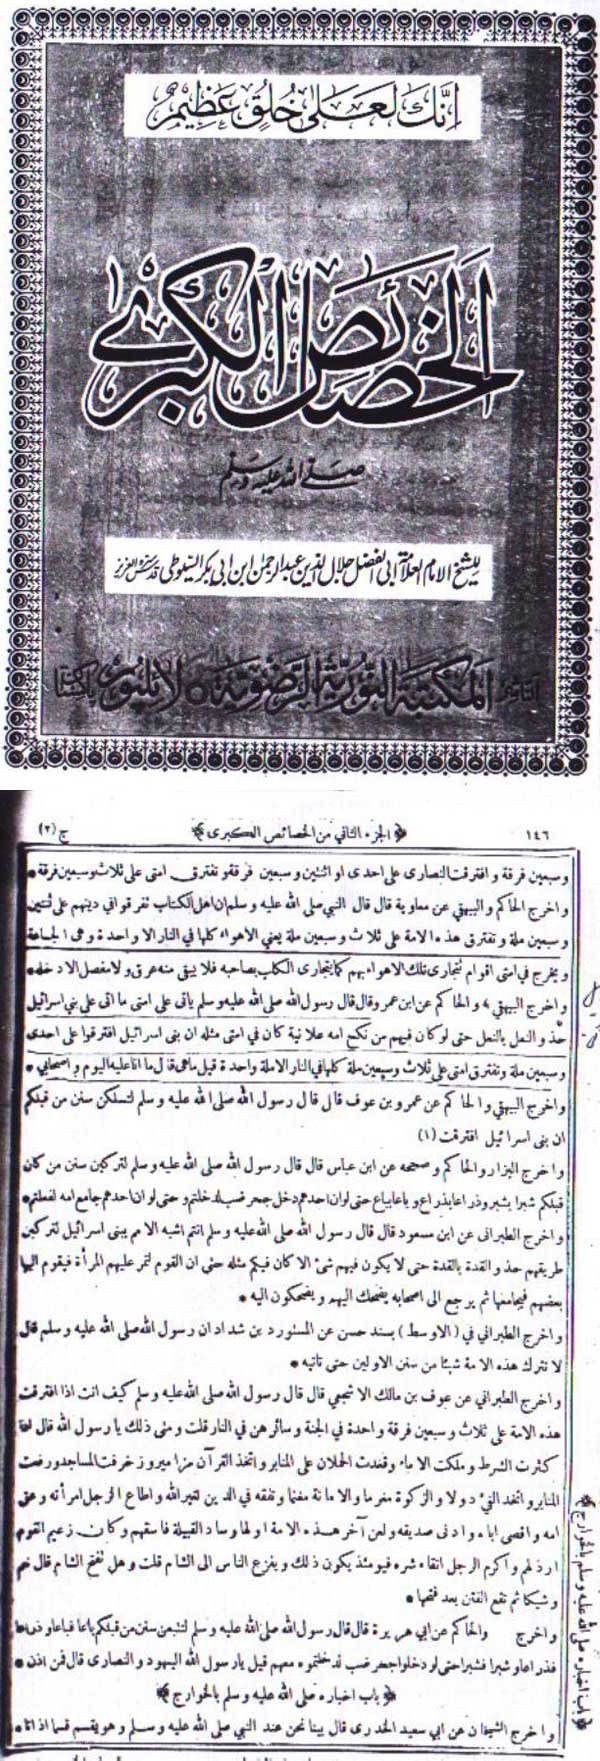 The doctrine of Imamate from the Qur'an